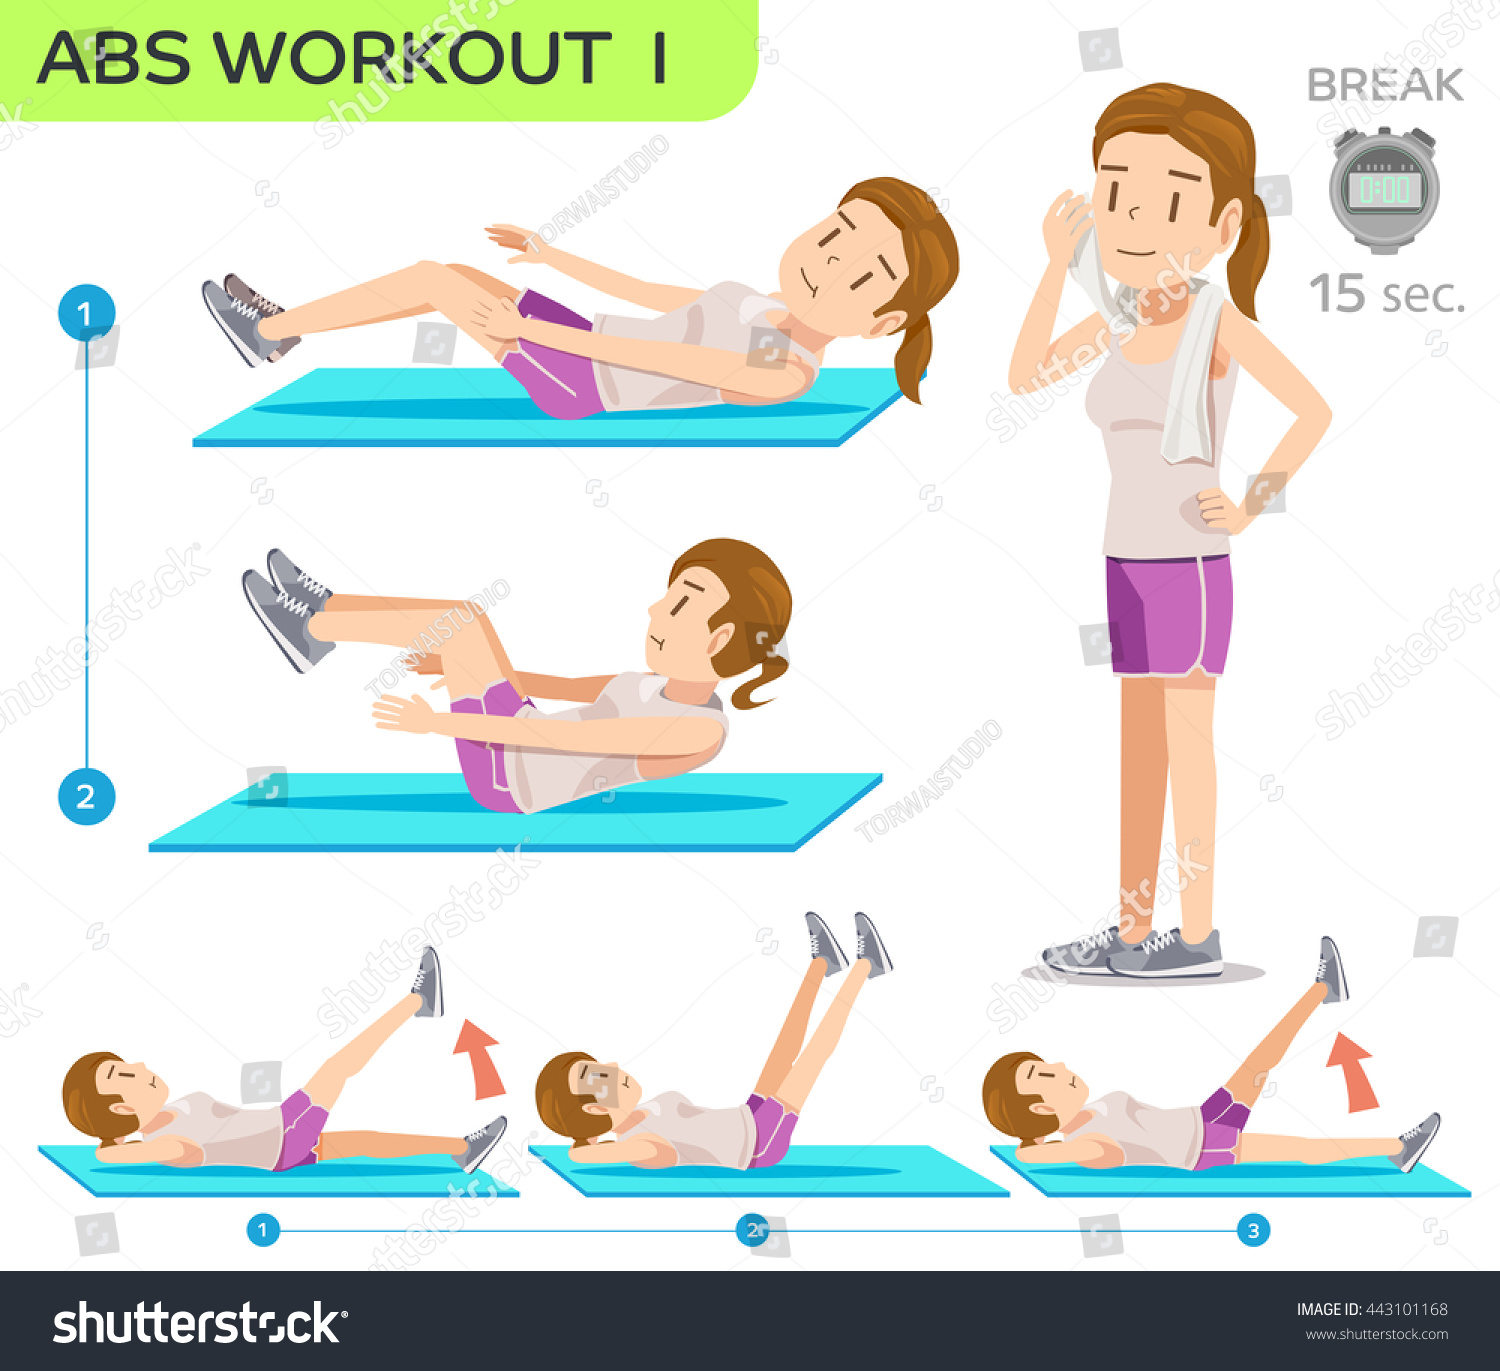 how to get abs for women at home